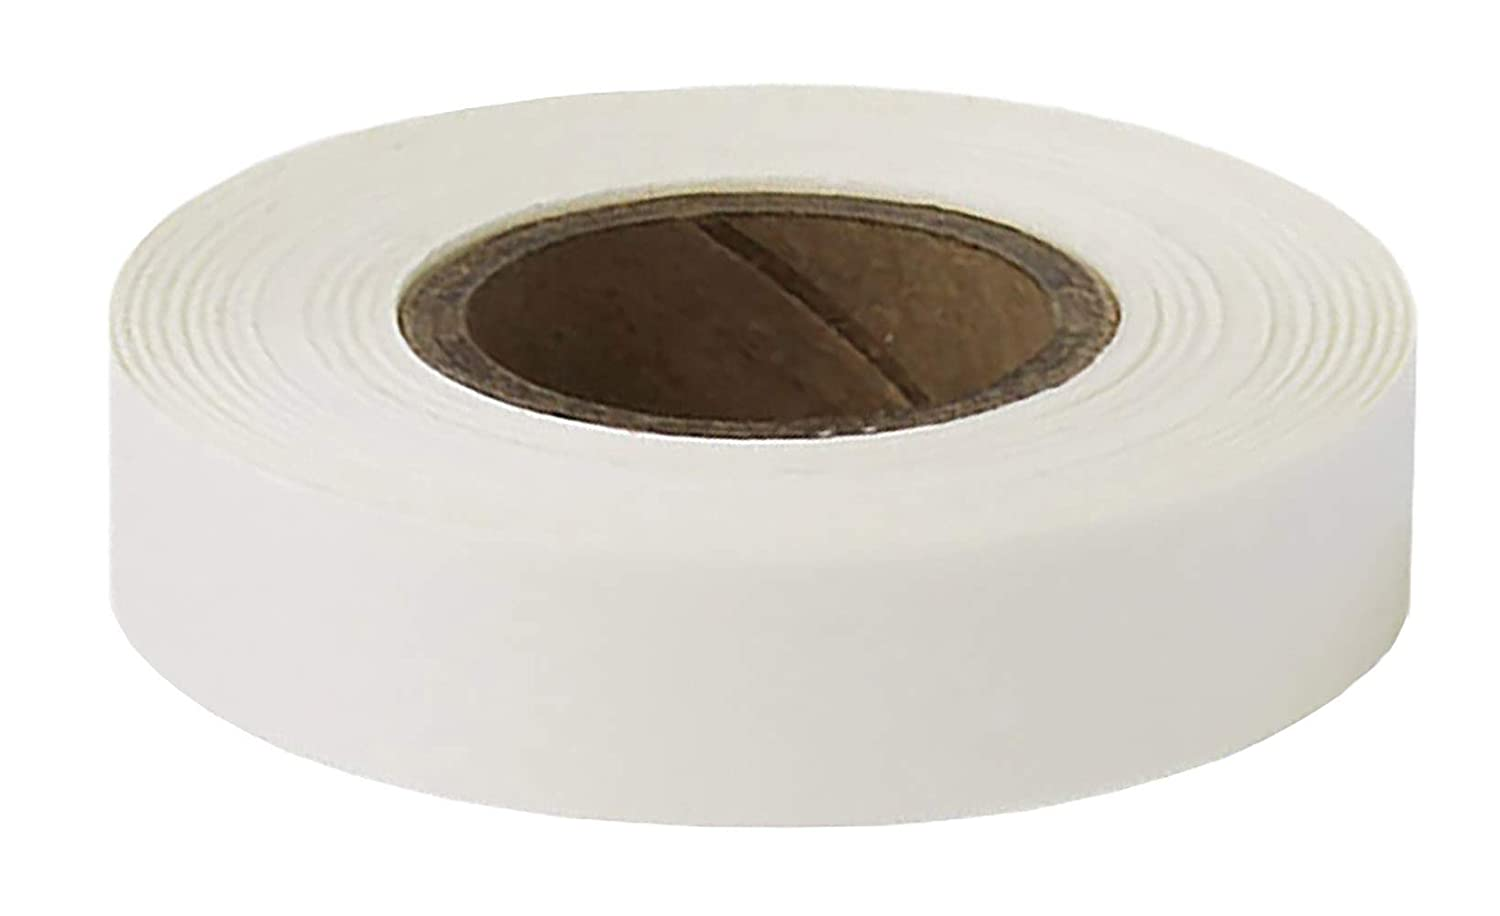 ChromaLabel 1/2 Inch Clean Remove Color-Code Tape, 500 Inch Roll, White